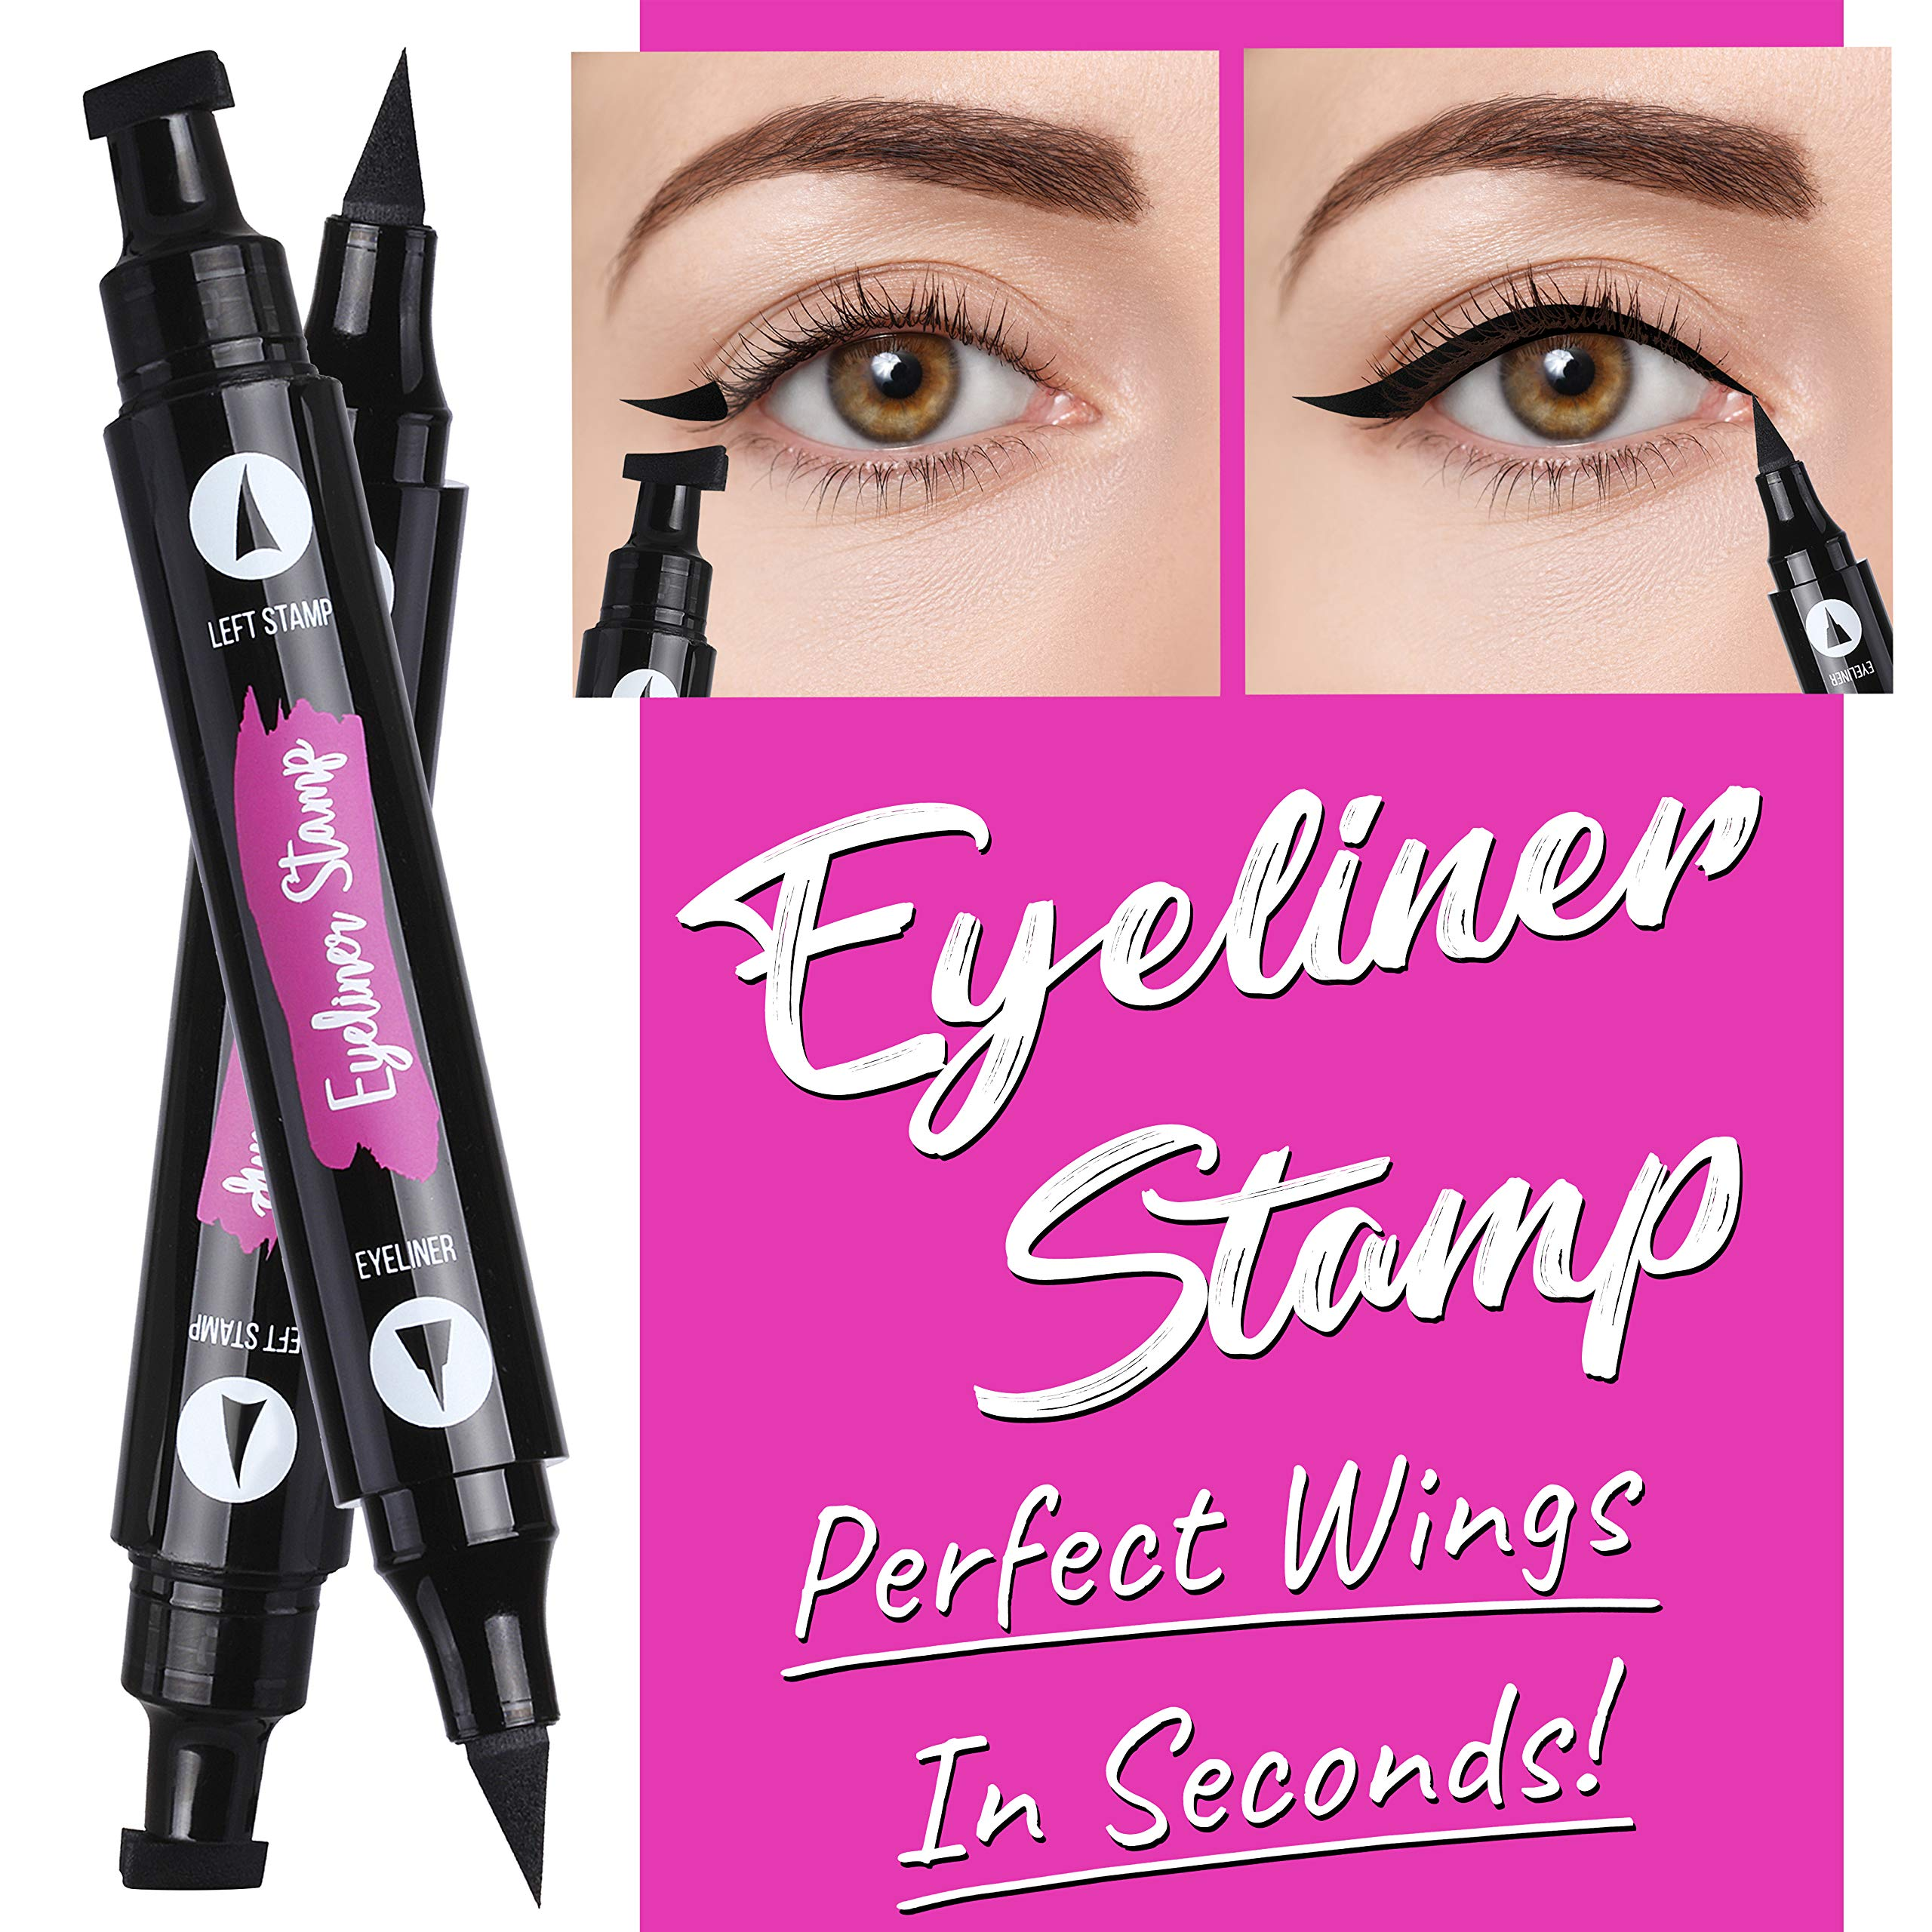 Winged Eyeliner Stamp - 2 Pieces (Left & Right) | Double Sided, Matte Black Liquid Eyeliner | Extremely Pigmented, Waterproof, Smudge-Proof | Cruelty Free & Vegan - For Perfect Wings & Cat Eyes